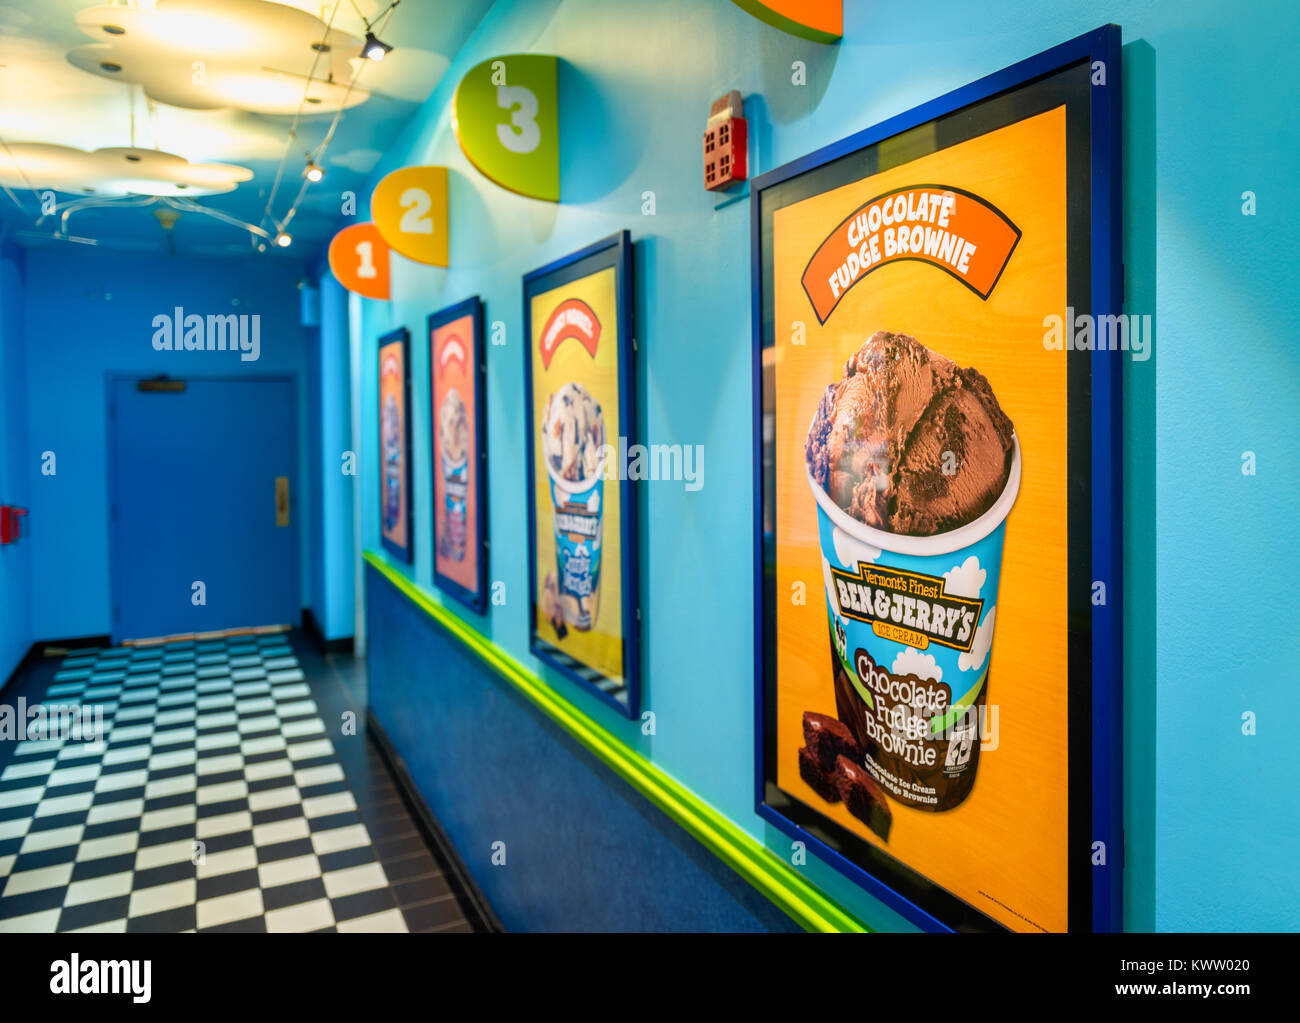 Corridor in Ben and Jerry's ice cream manufacturing headquarters in Waterbury, Vermont, USA. Ben & Jerry's - Stock Image